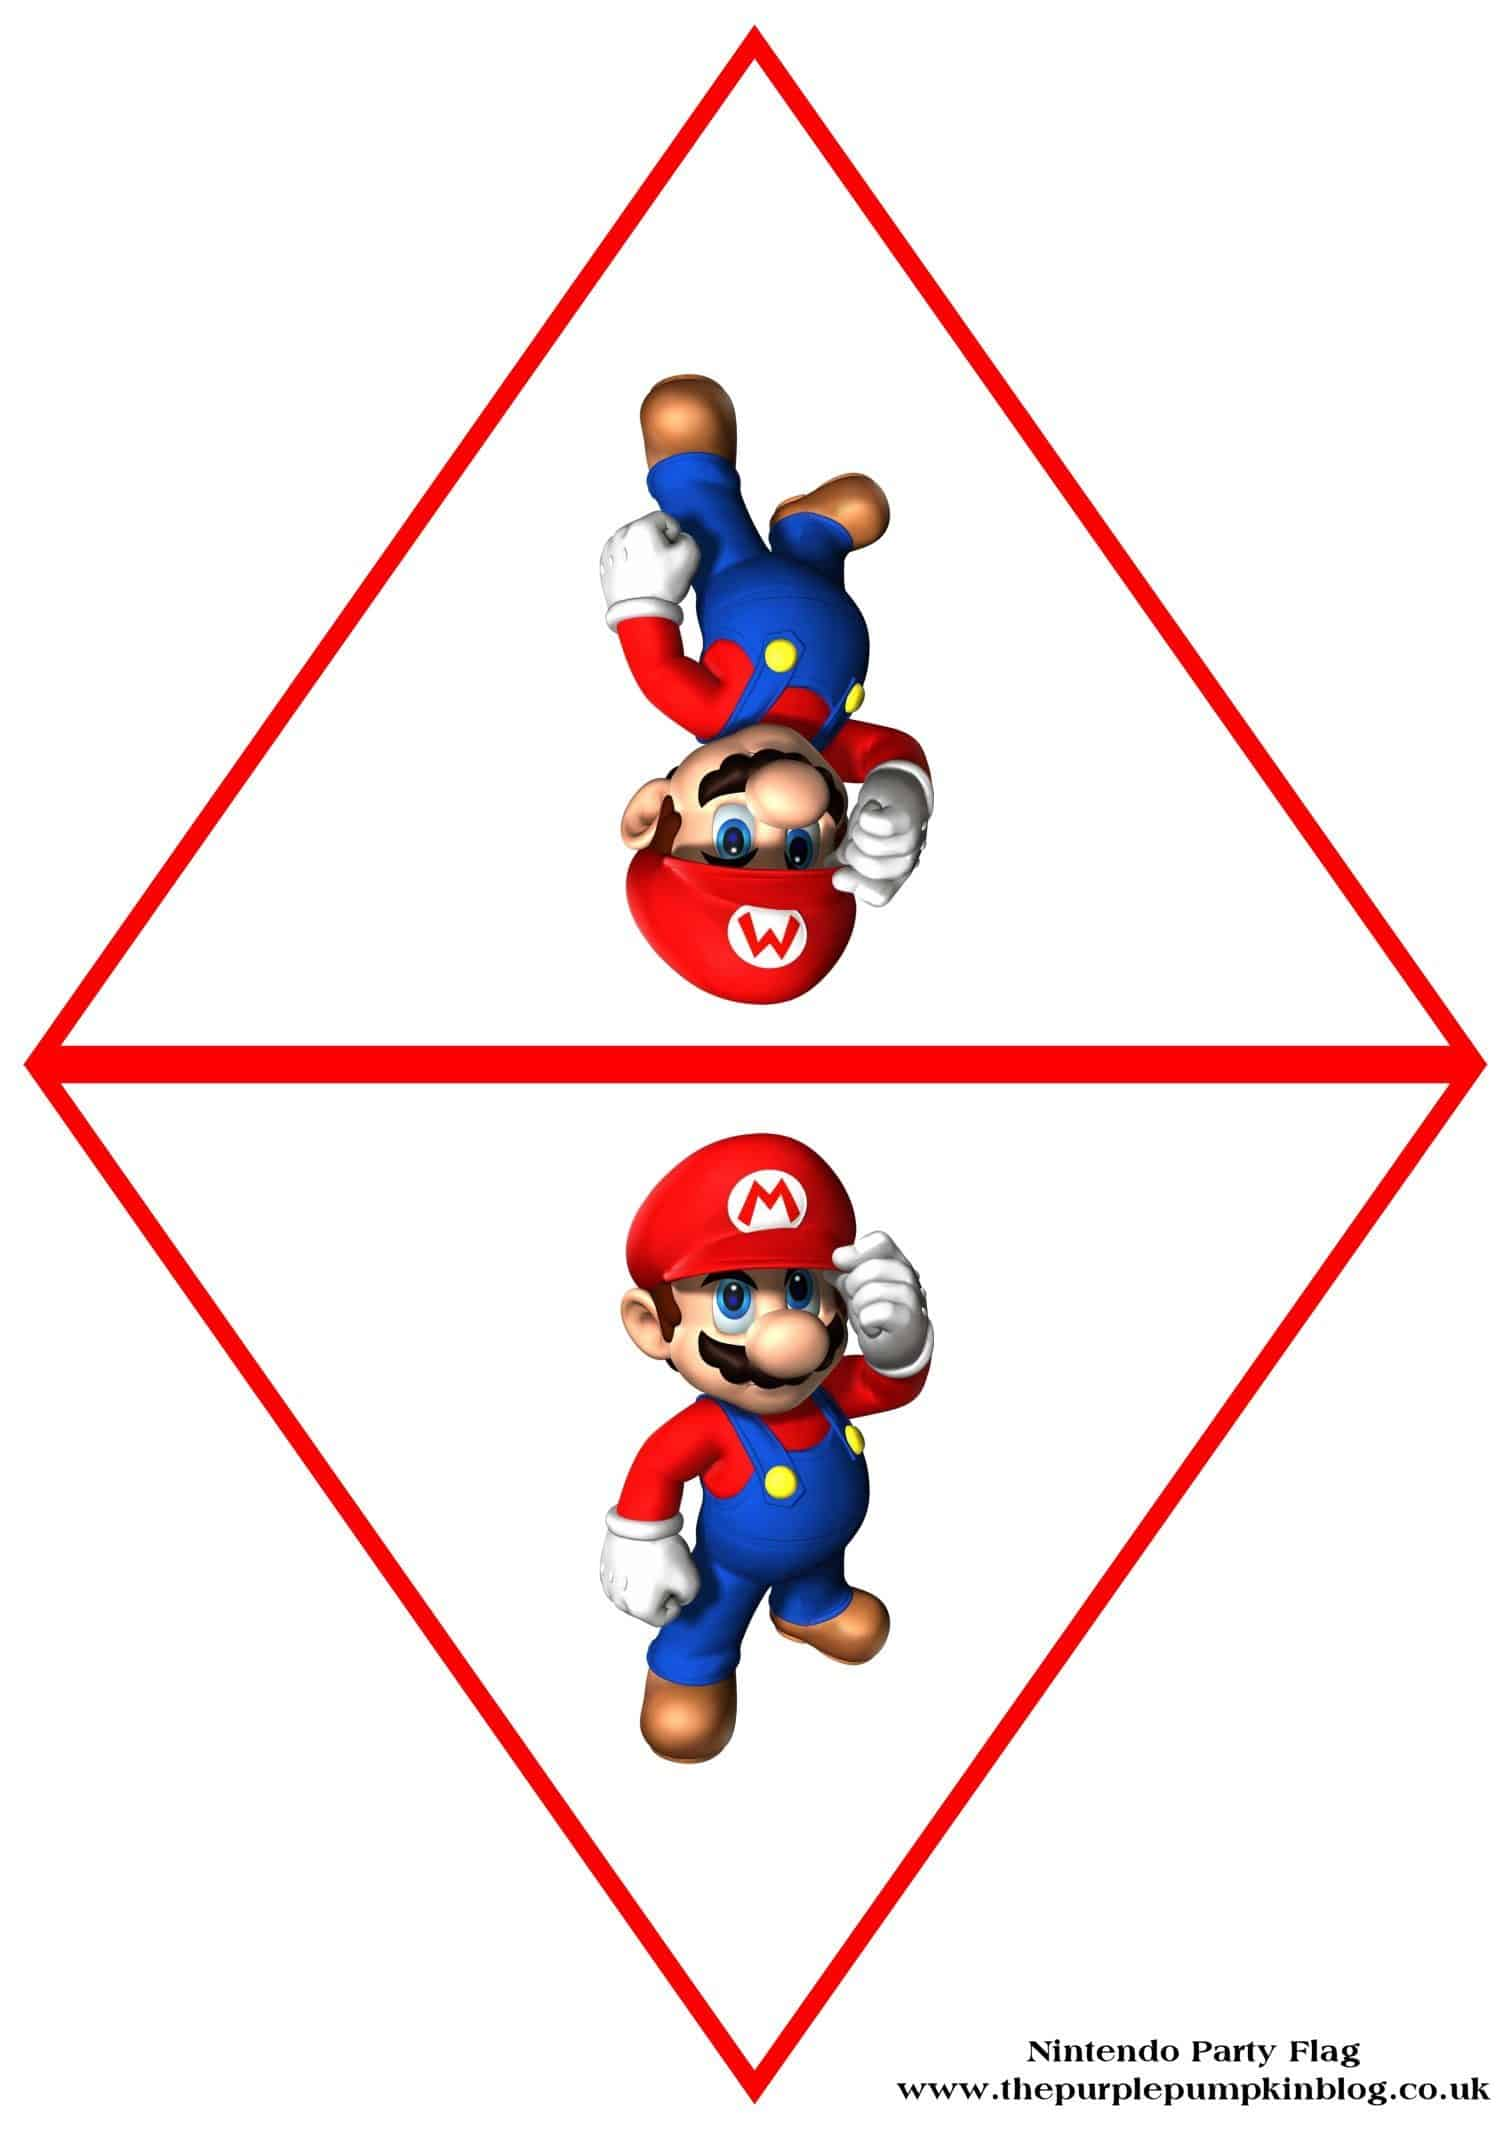 nintendo-party-flag-mario